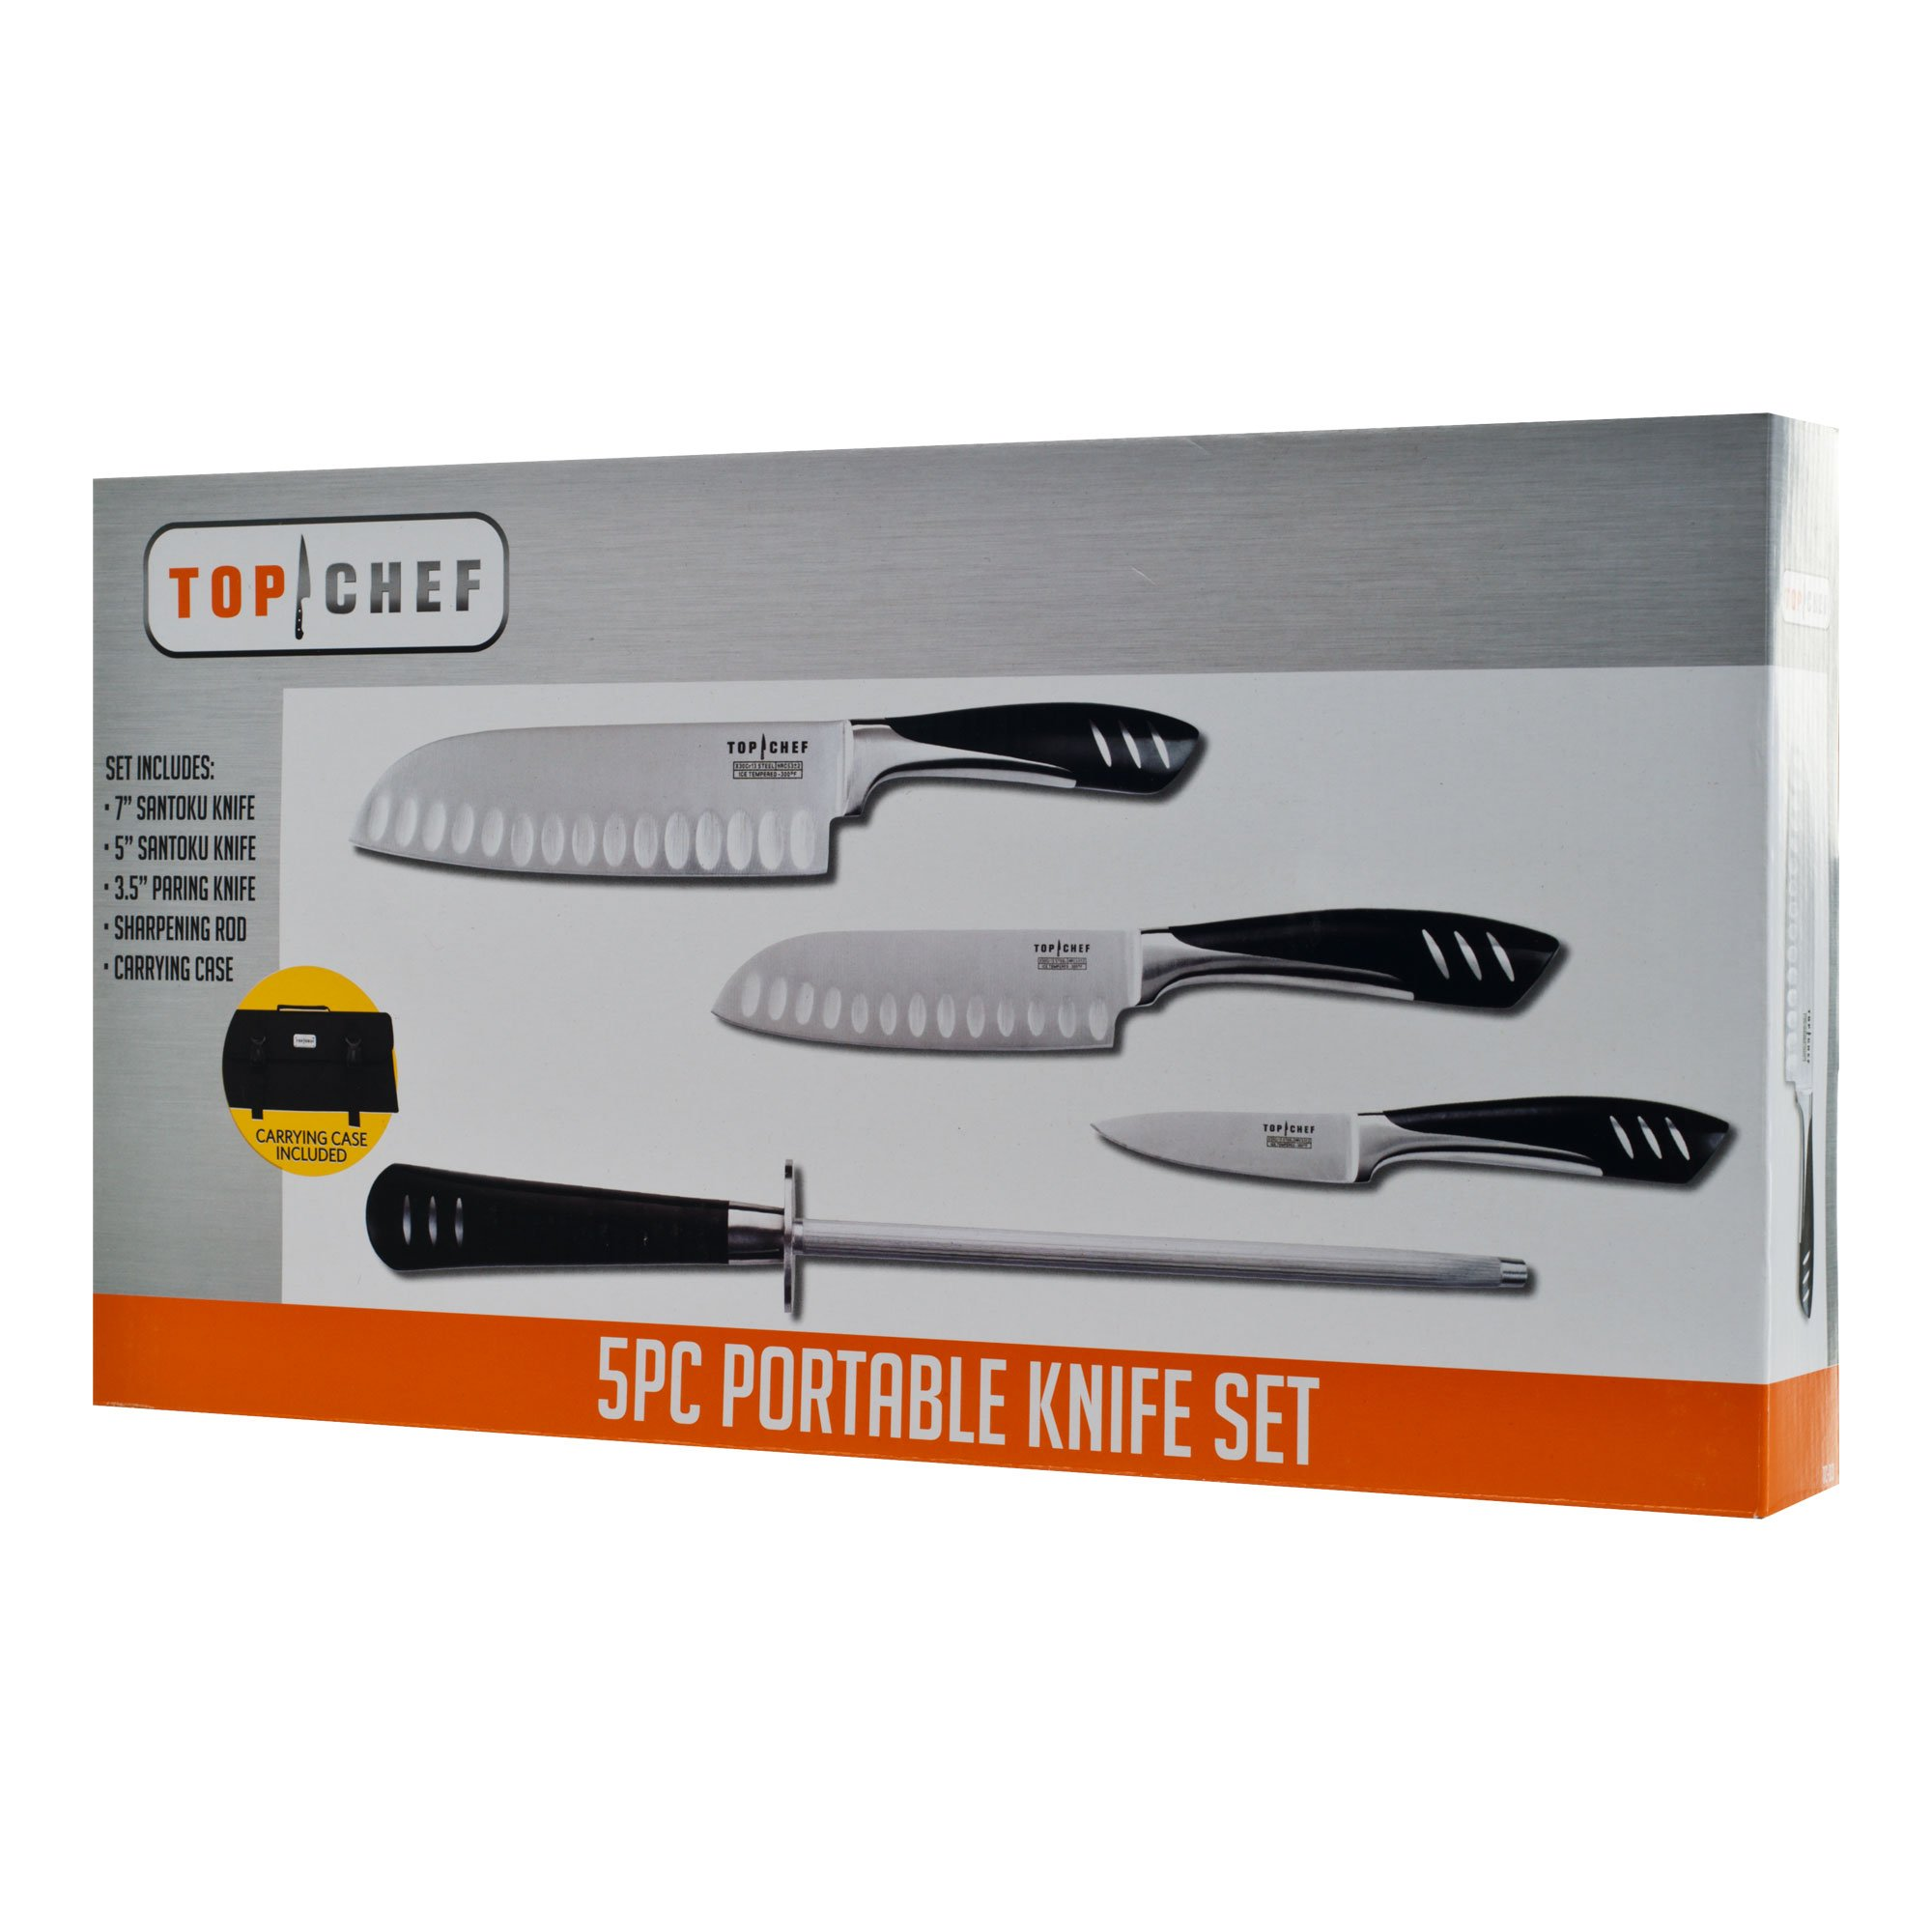 Top Chef 5-Piece Stainless Steel Knife Set, Portable by Topchef (Image #2)